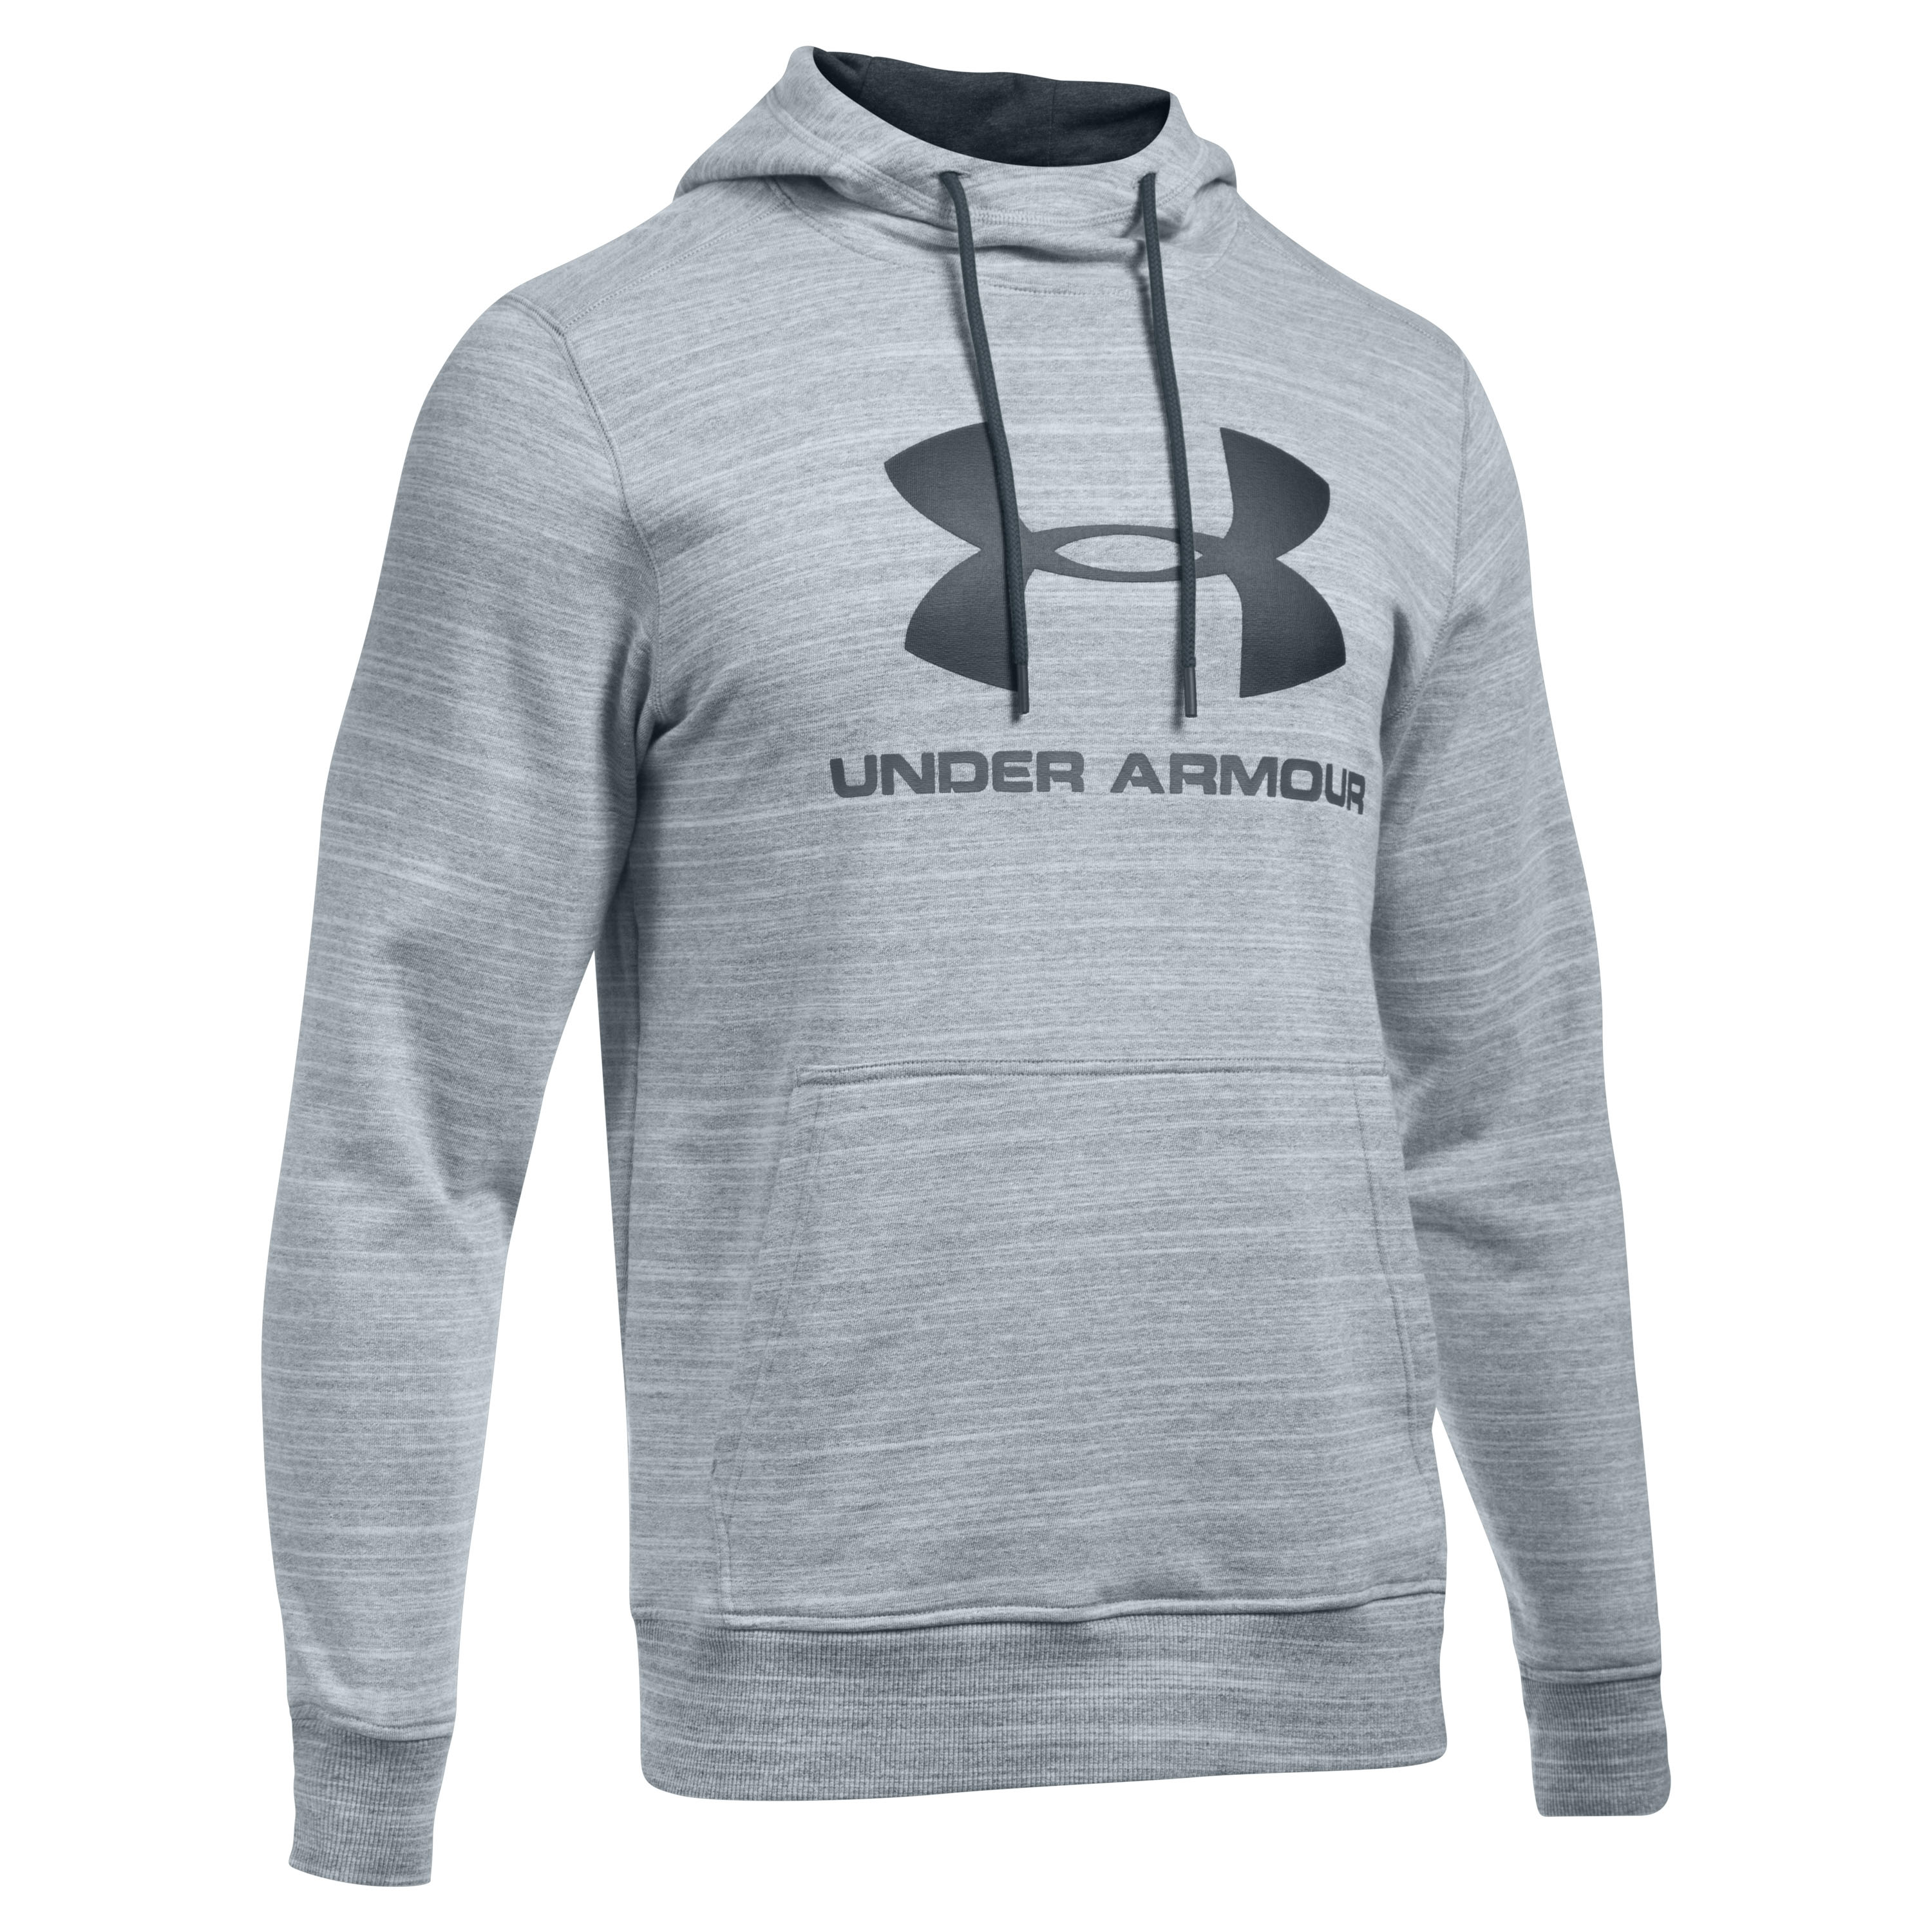 Under Armour Pullover Triblend Sportstyle gray